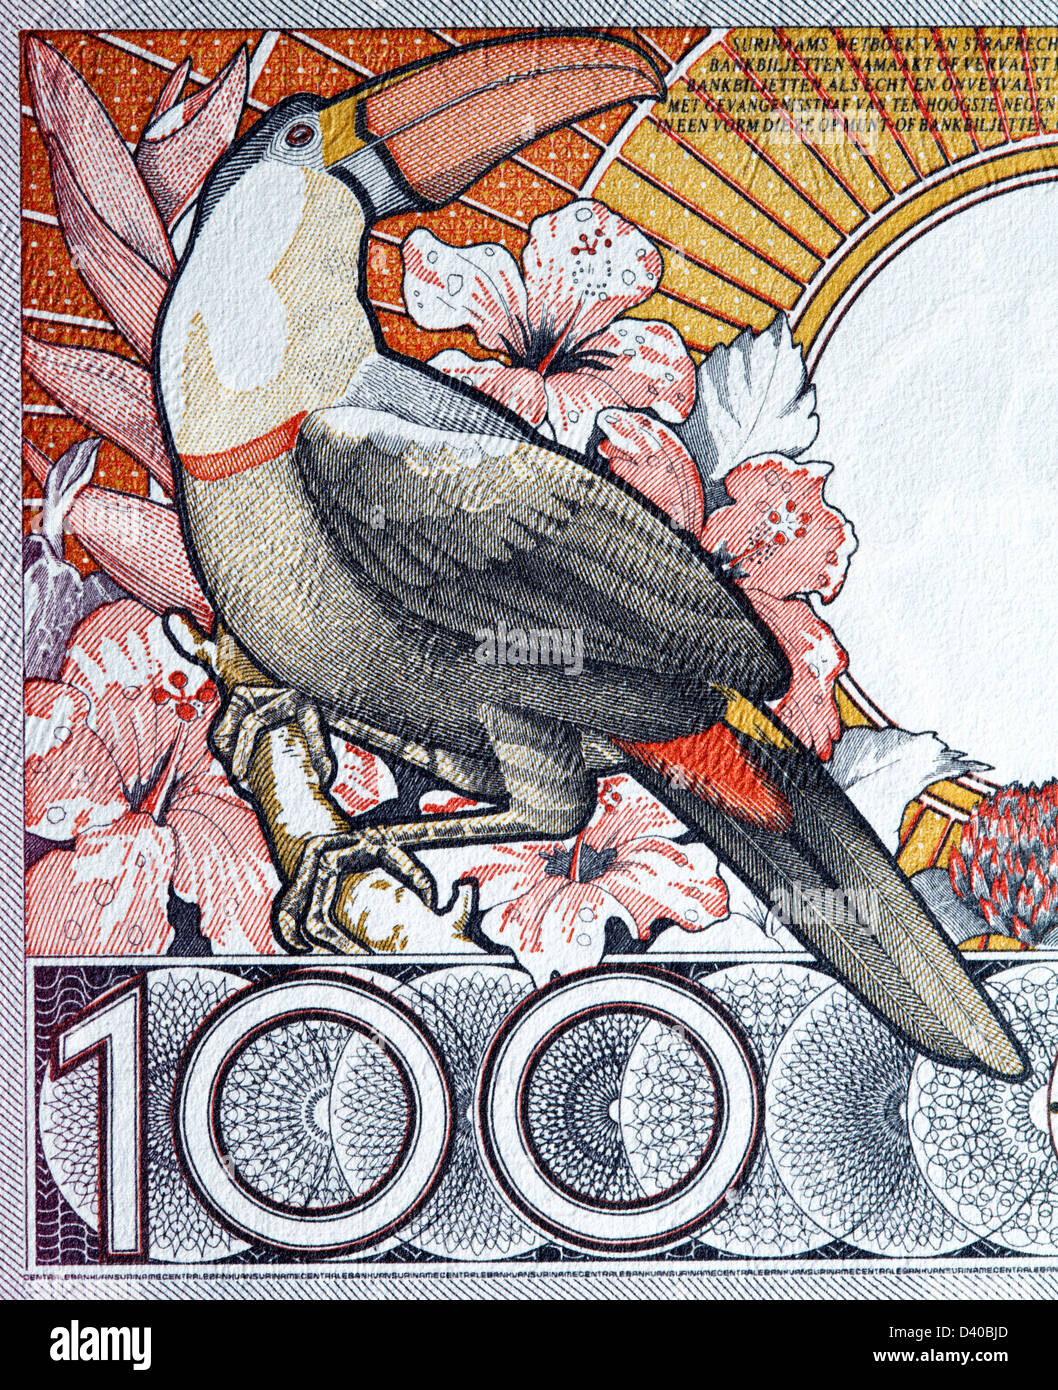 Toucan from 100 Gulden banknote, Suriname, 1988 - Stock Image